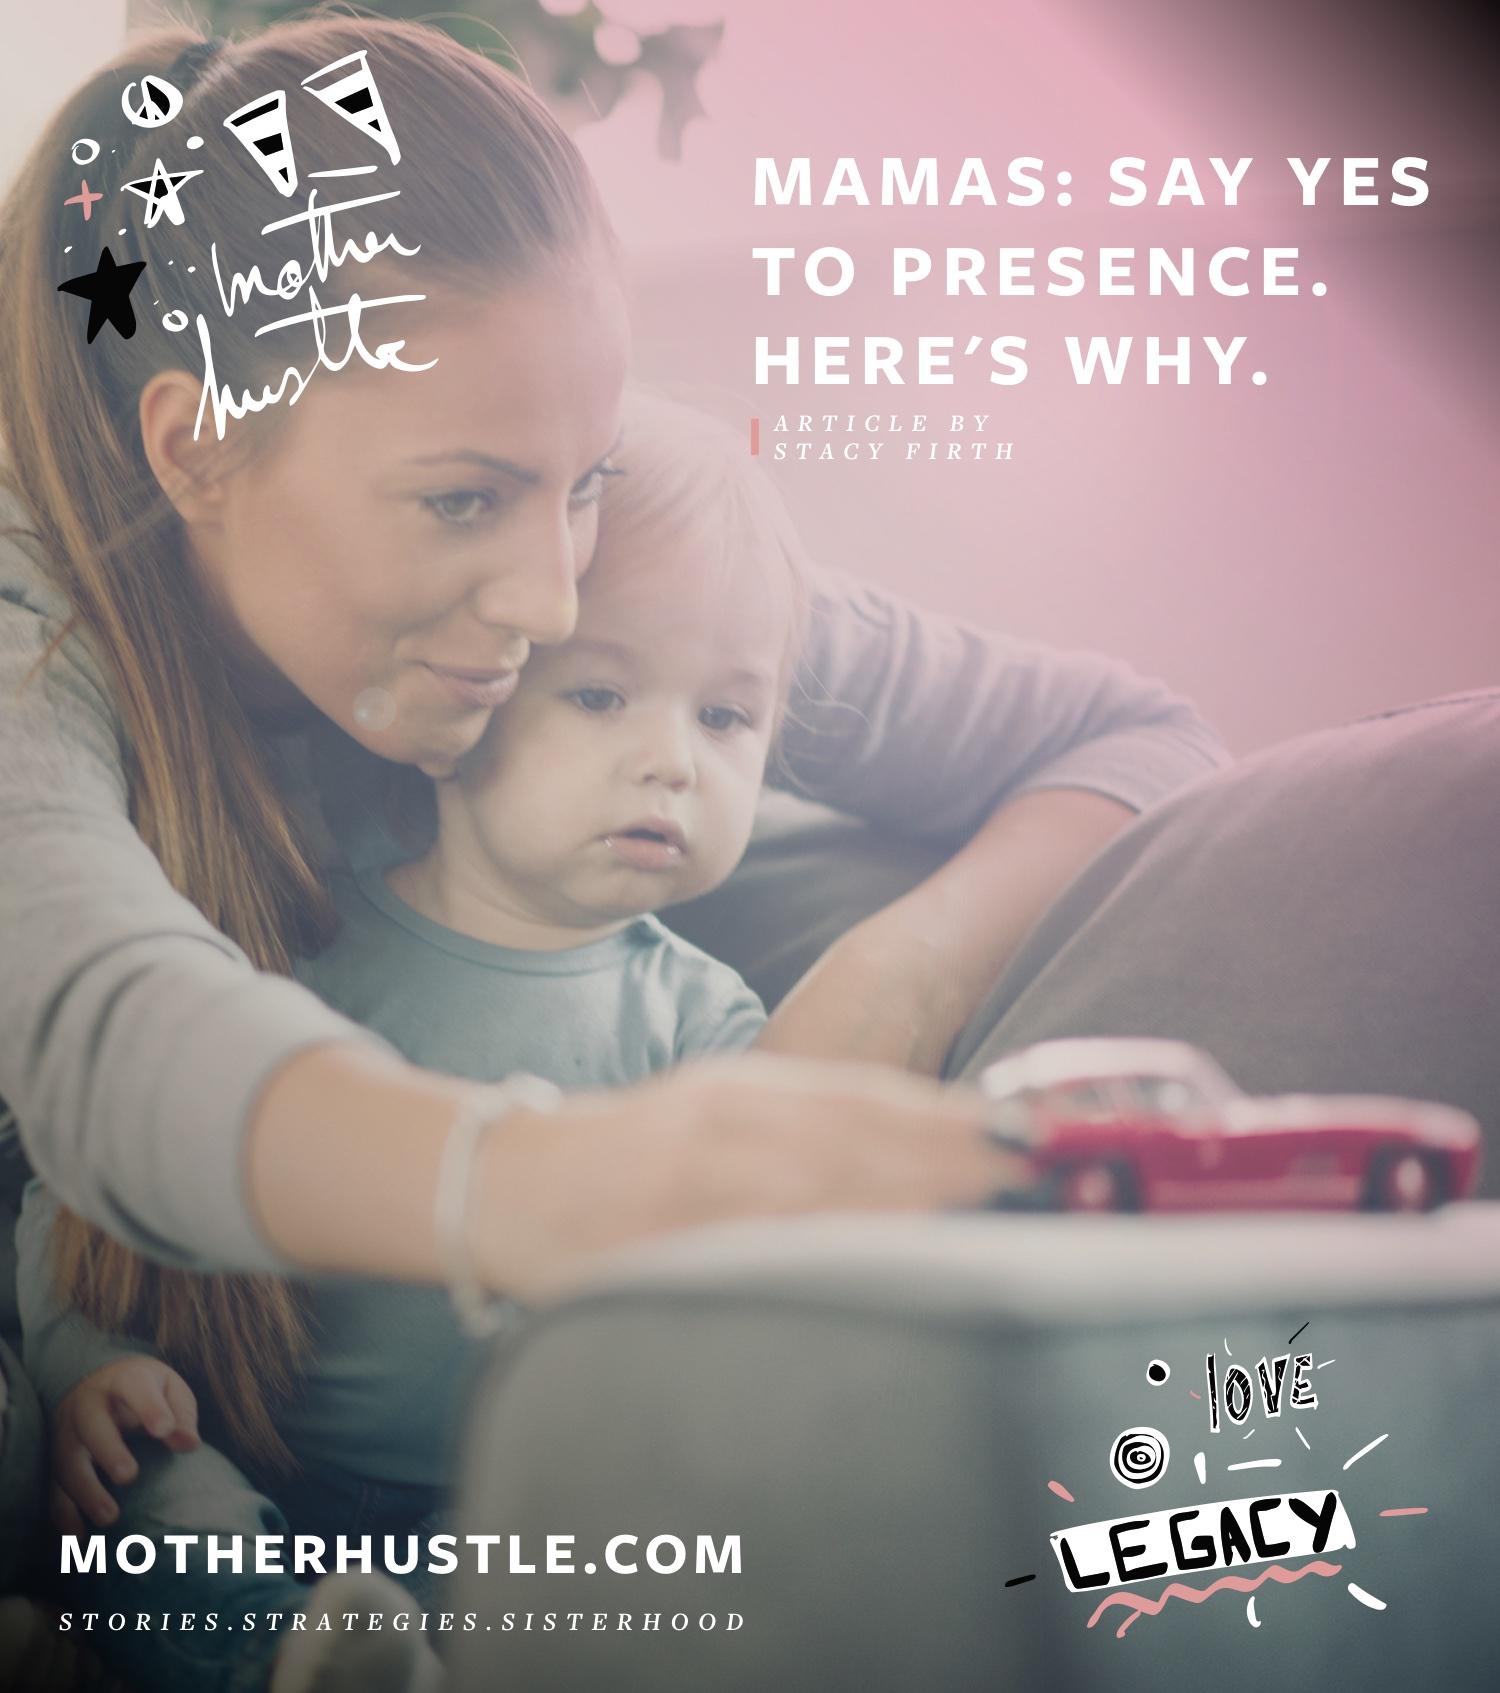 Mamas-Say Yes to Presence. Here's Why - by Stacy Firth for MotherHustle